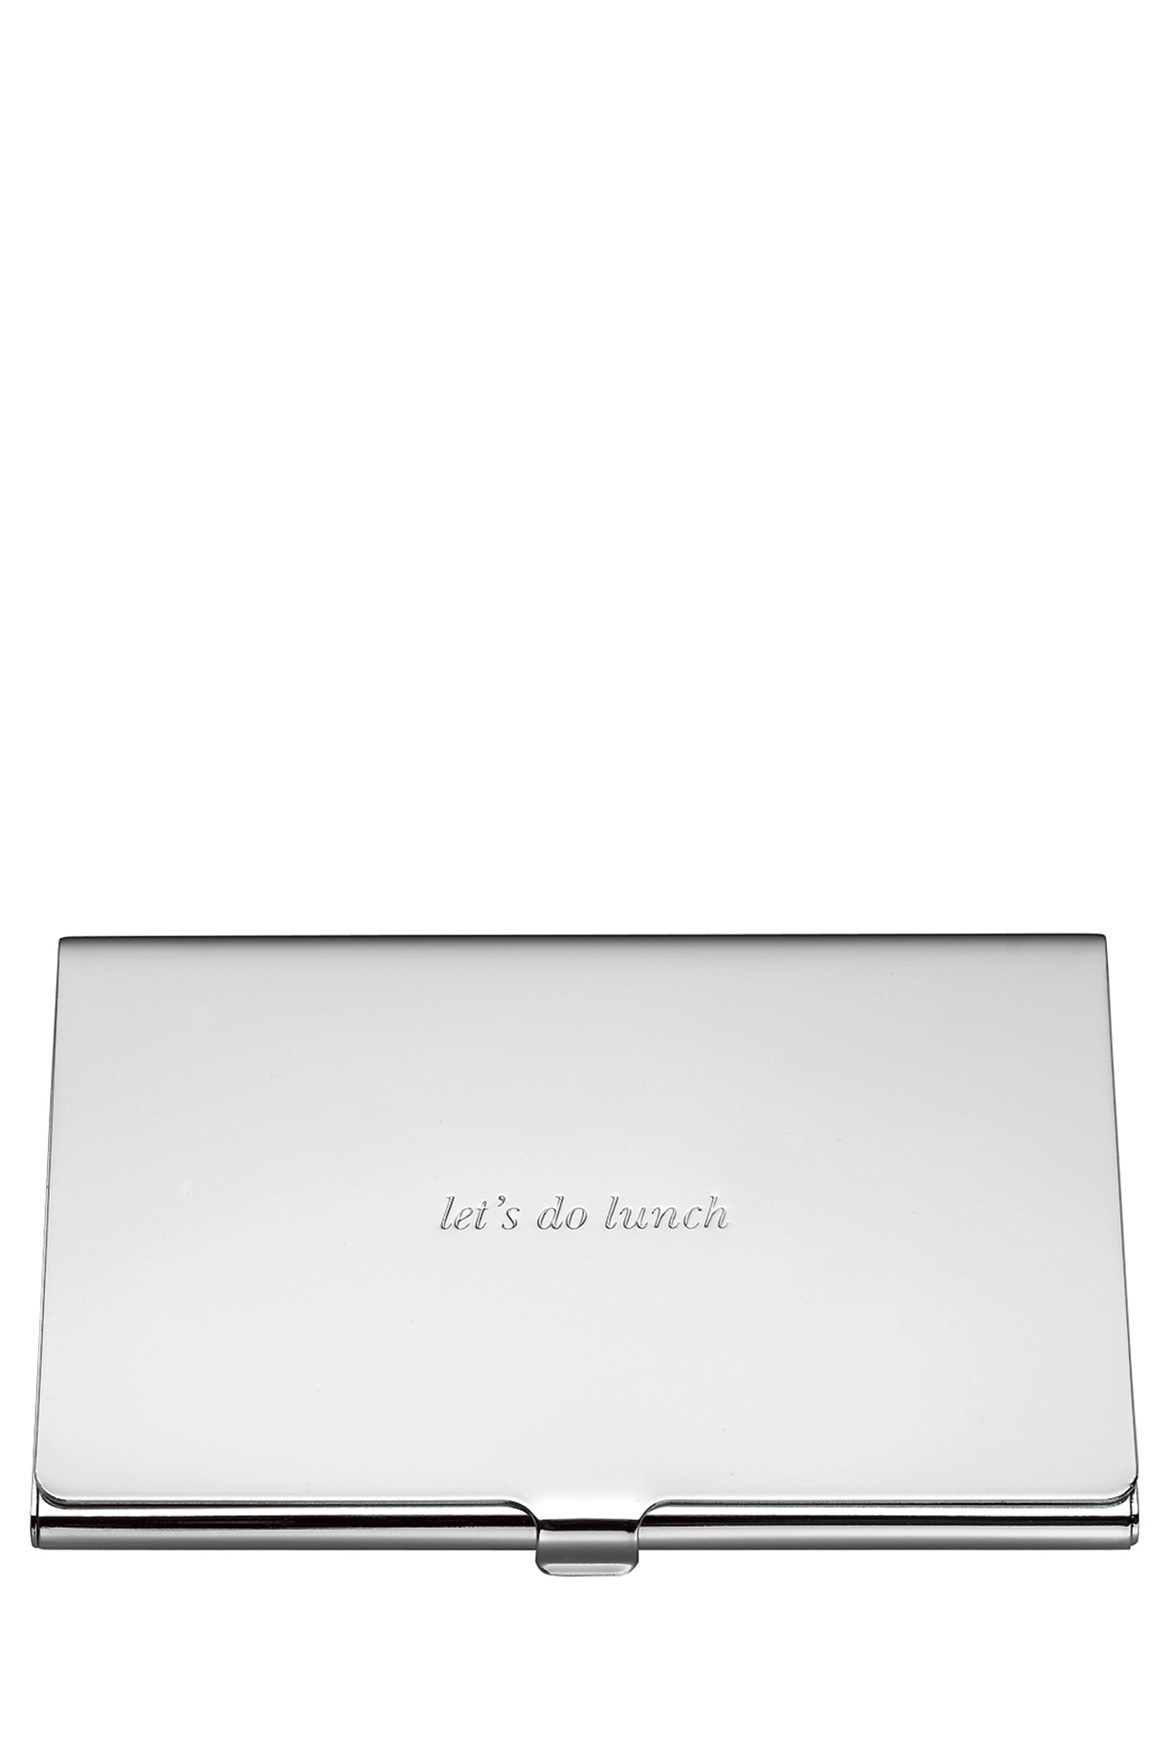 Kate Spade New York | Silver Street Business Card Holder | Myer Online